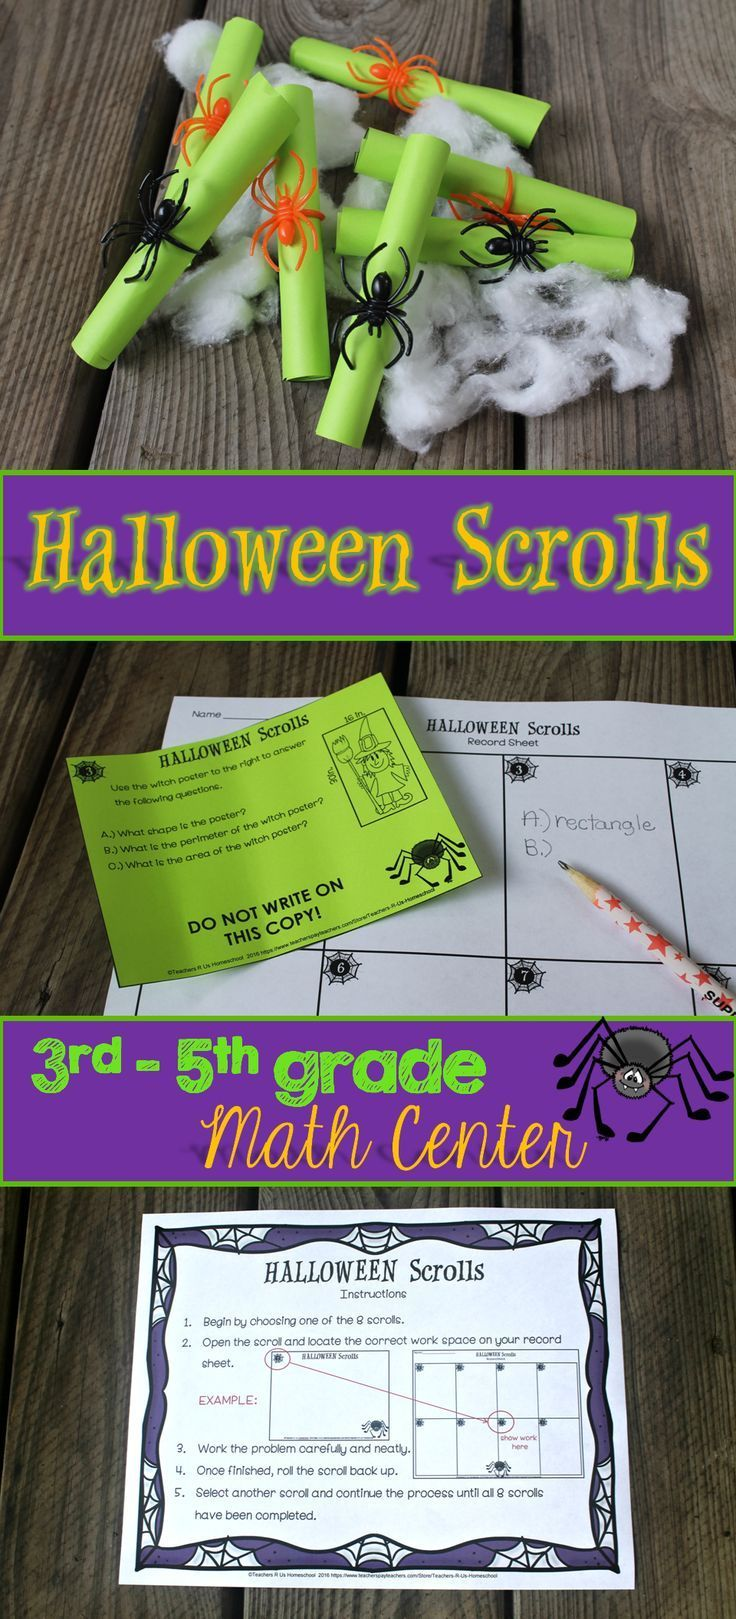 This Halloween themed math center is super fun and creative! Students will love solving these 8 word problems with multiple questions per problem. Check out the preview for a more detailed view!  Skills include: addition, subtraction, critical reasoning, time, geometry, area, perimeter, fractions, analyzing tables, measurement and more.